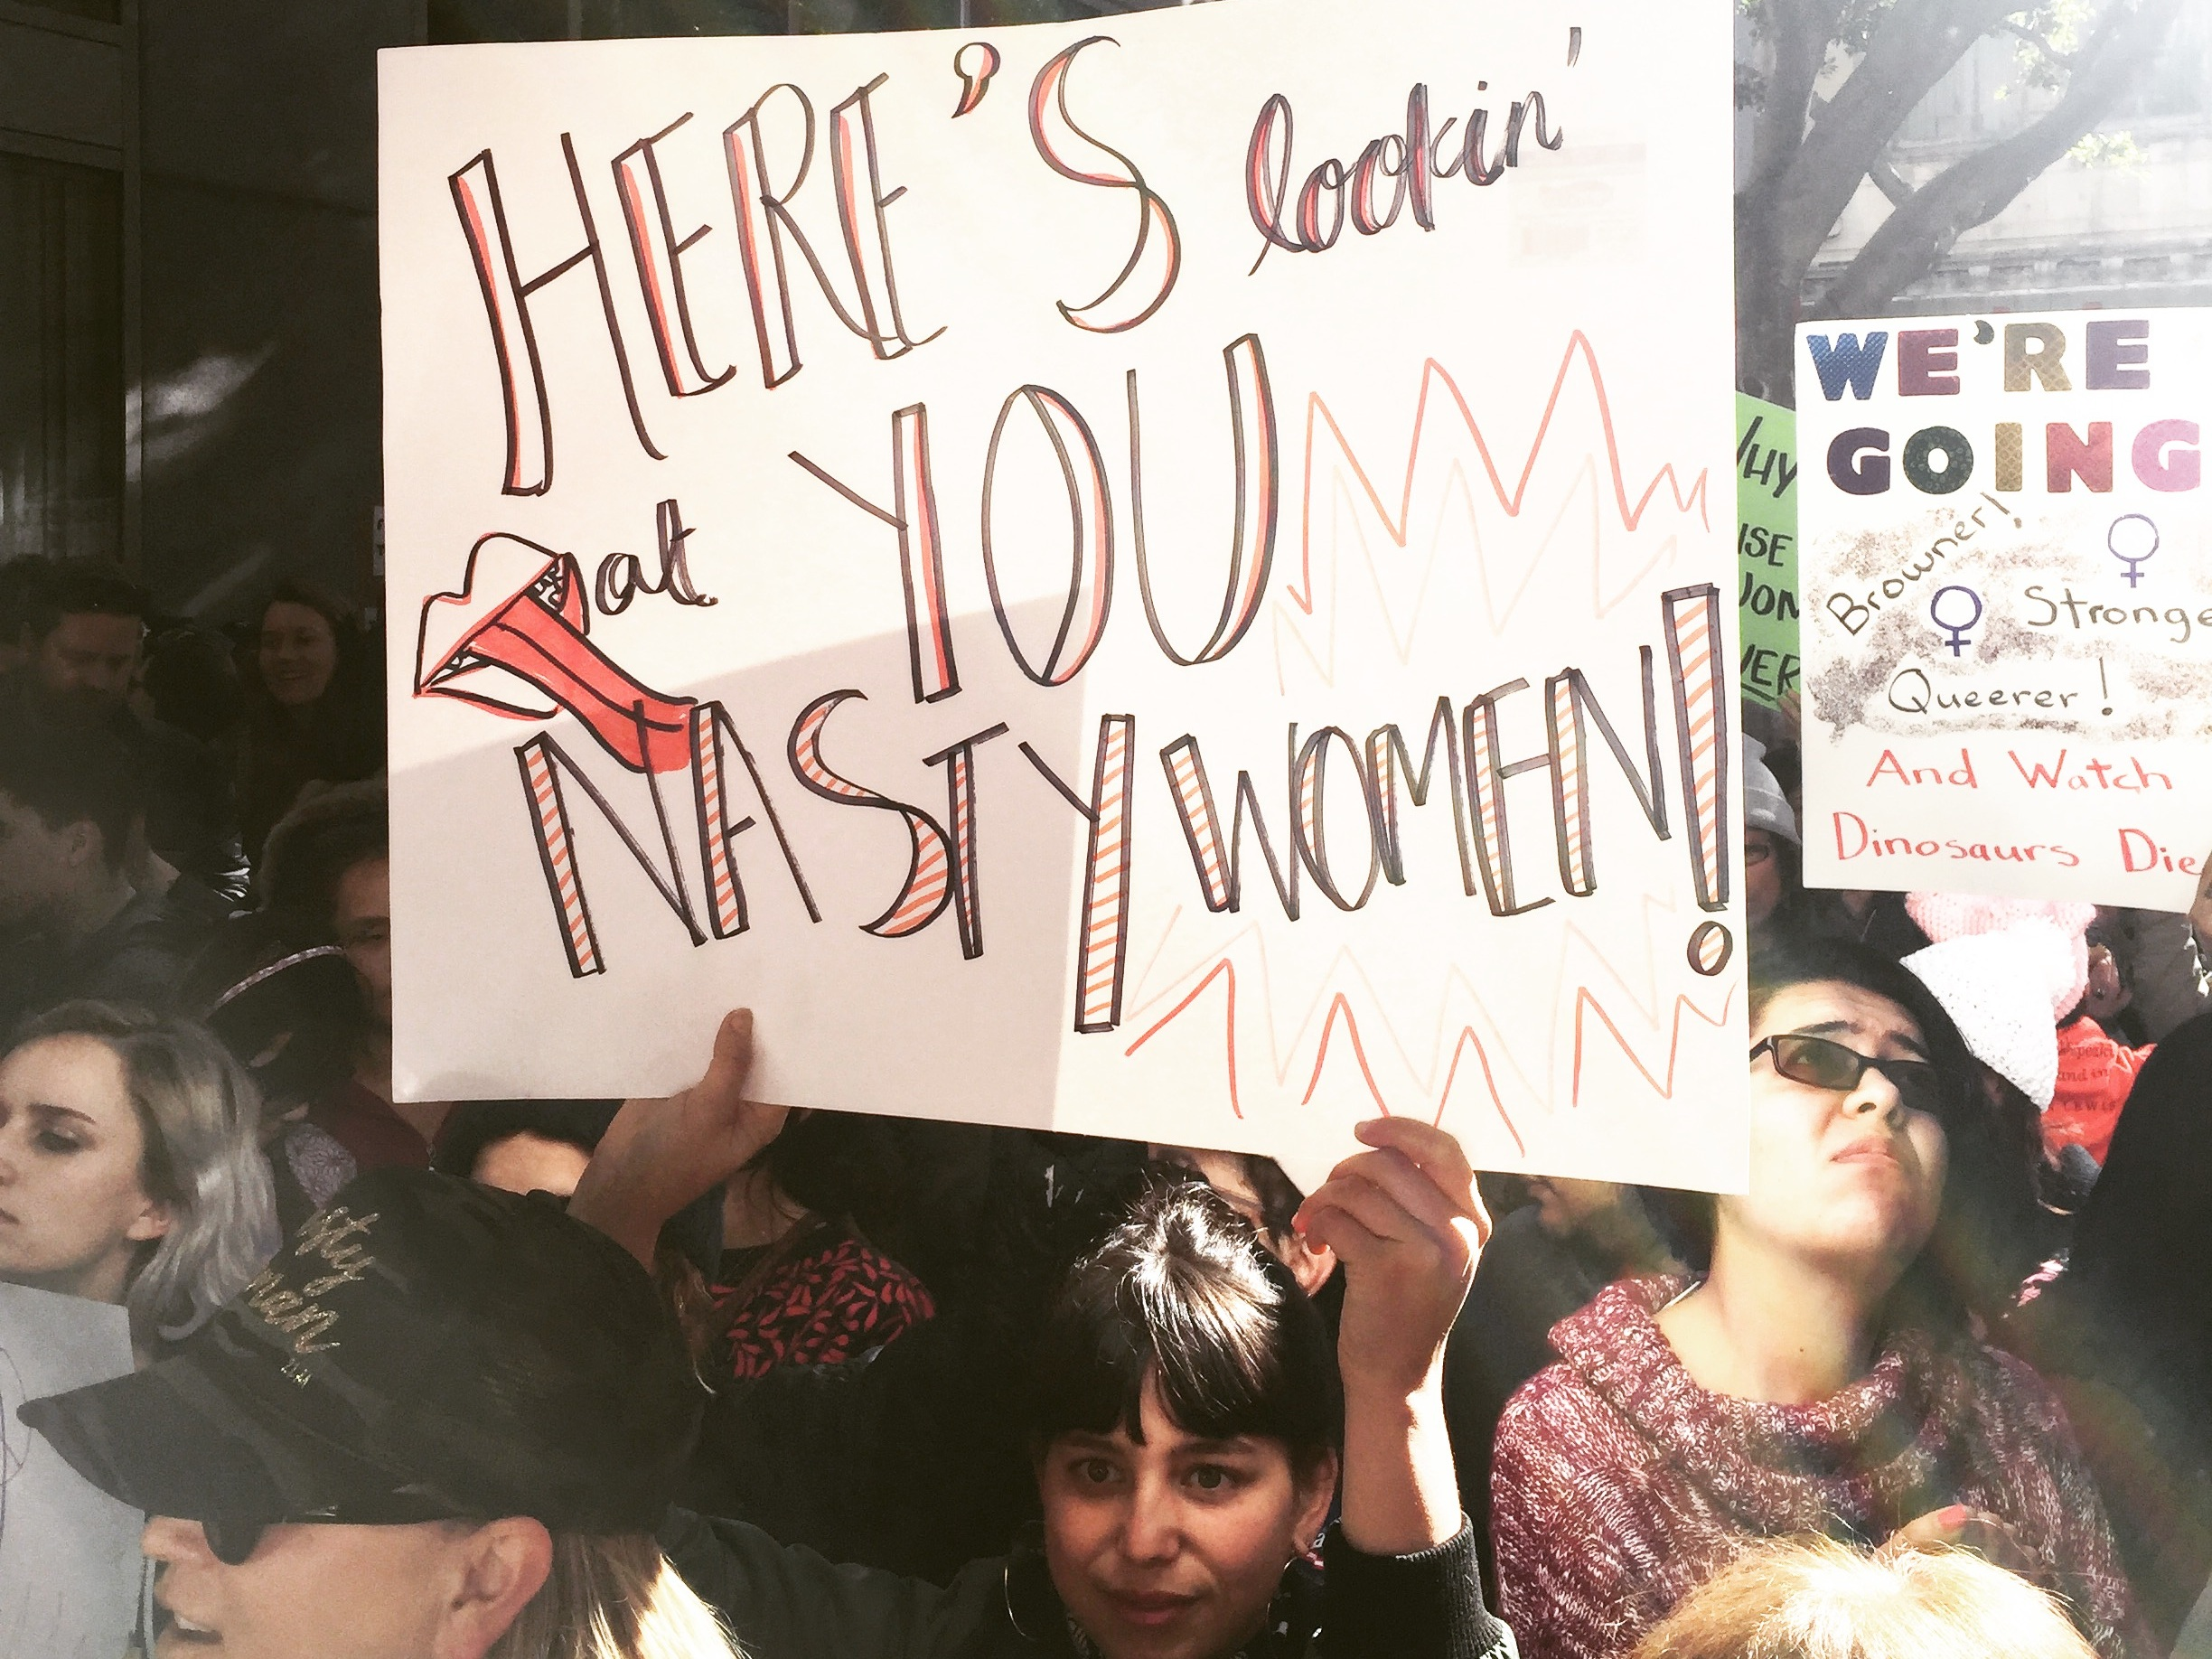 """Image depicts a photo of a young woman holding a sign depicting the words """"Here's lookin' at you NASTY WOMEN!"""" with a drawing of red lips and a tongue."""